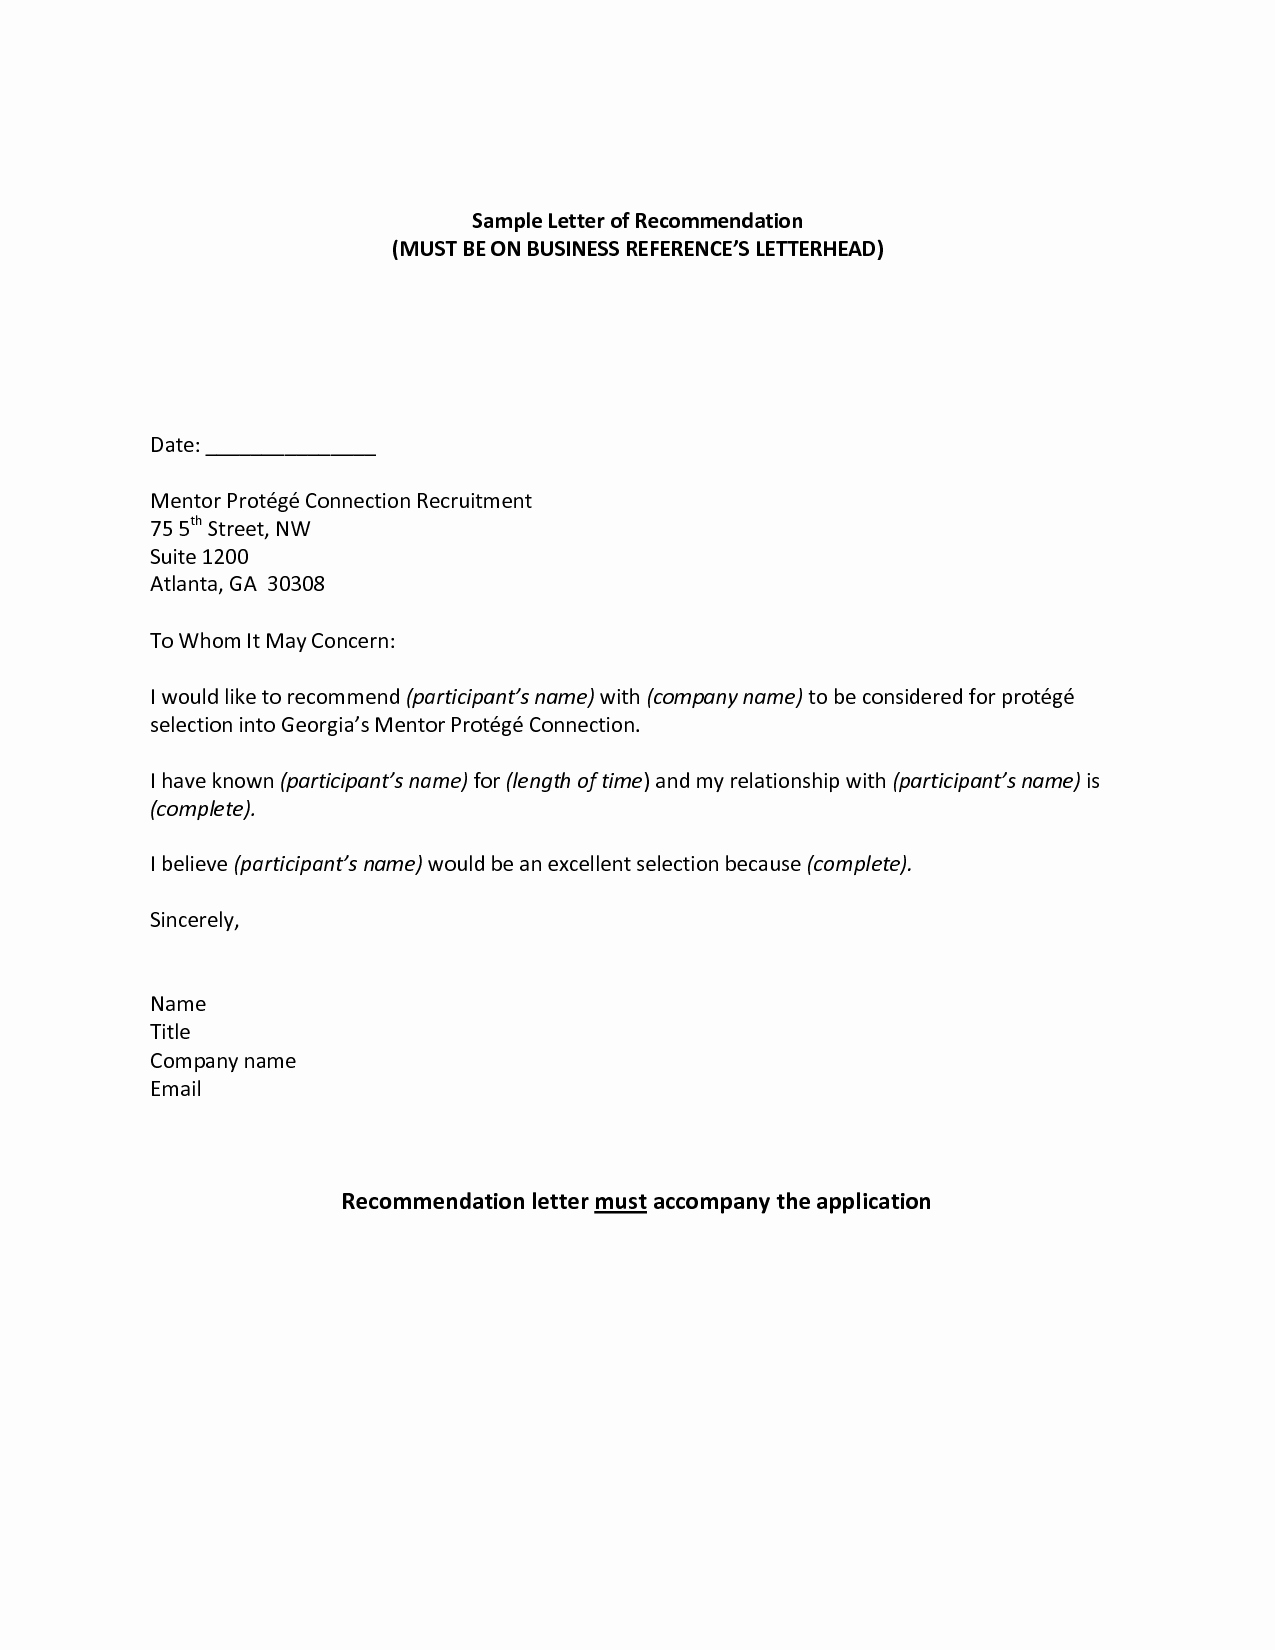 Letter Of Recommendation Sample Template Unique Professional Reference Sample Re Mendation Letter Jos